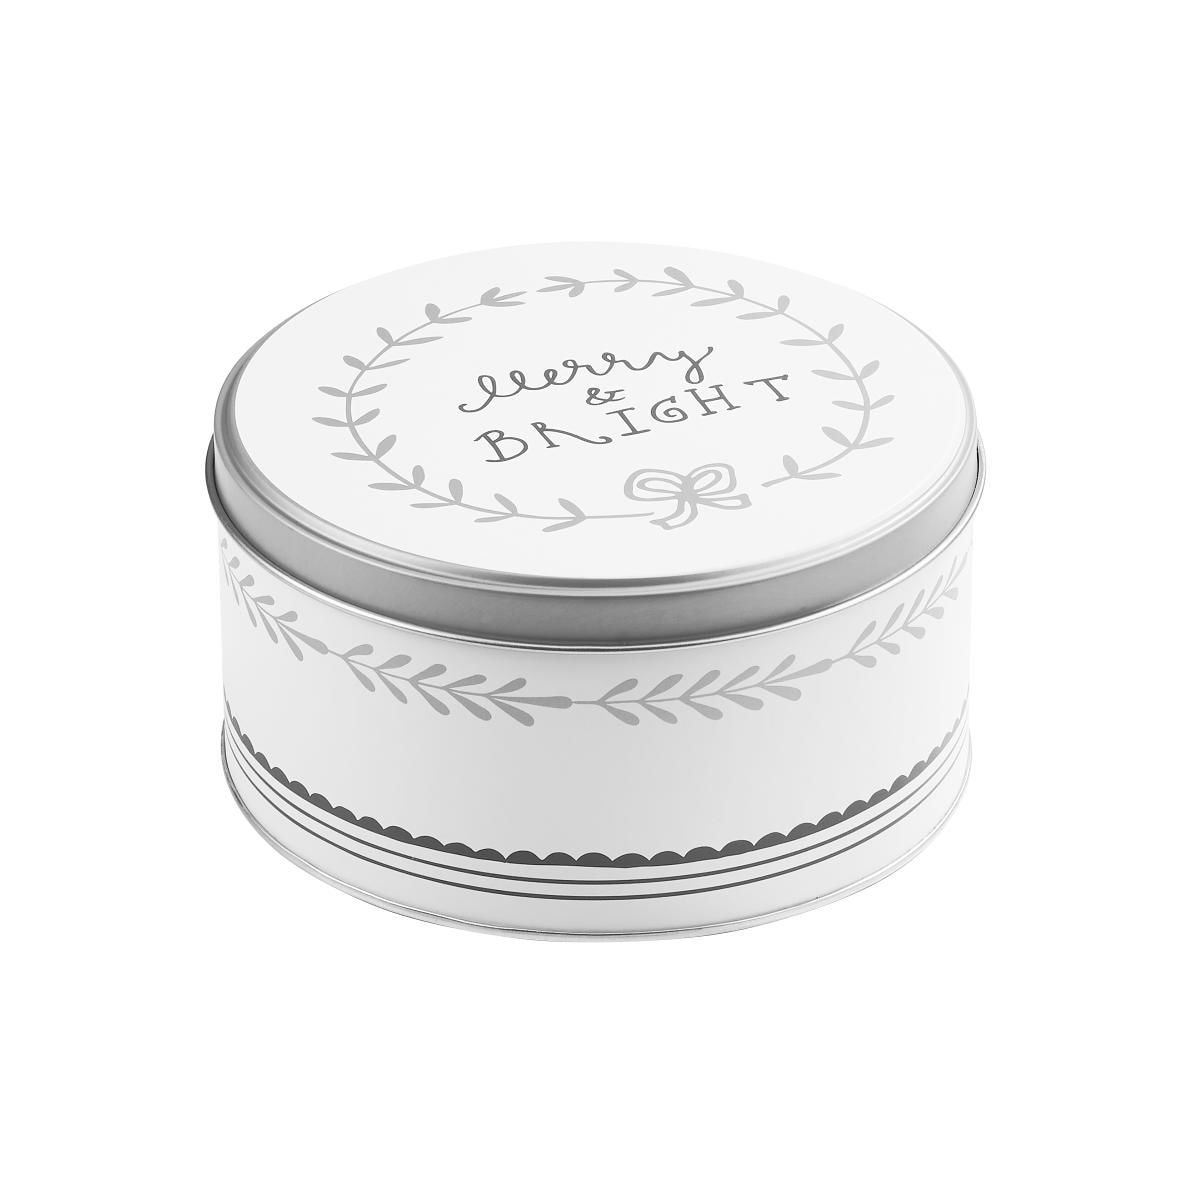 Butlers Cookie Jar Dose Merry & Bright Ø 13,5 cm weiss-silber